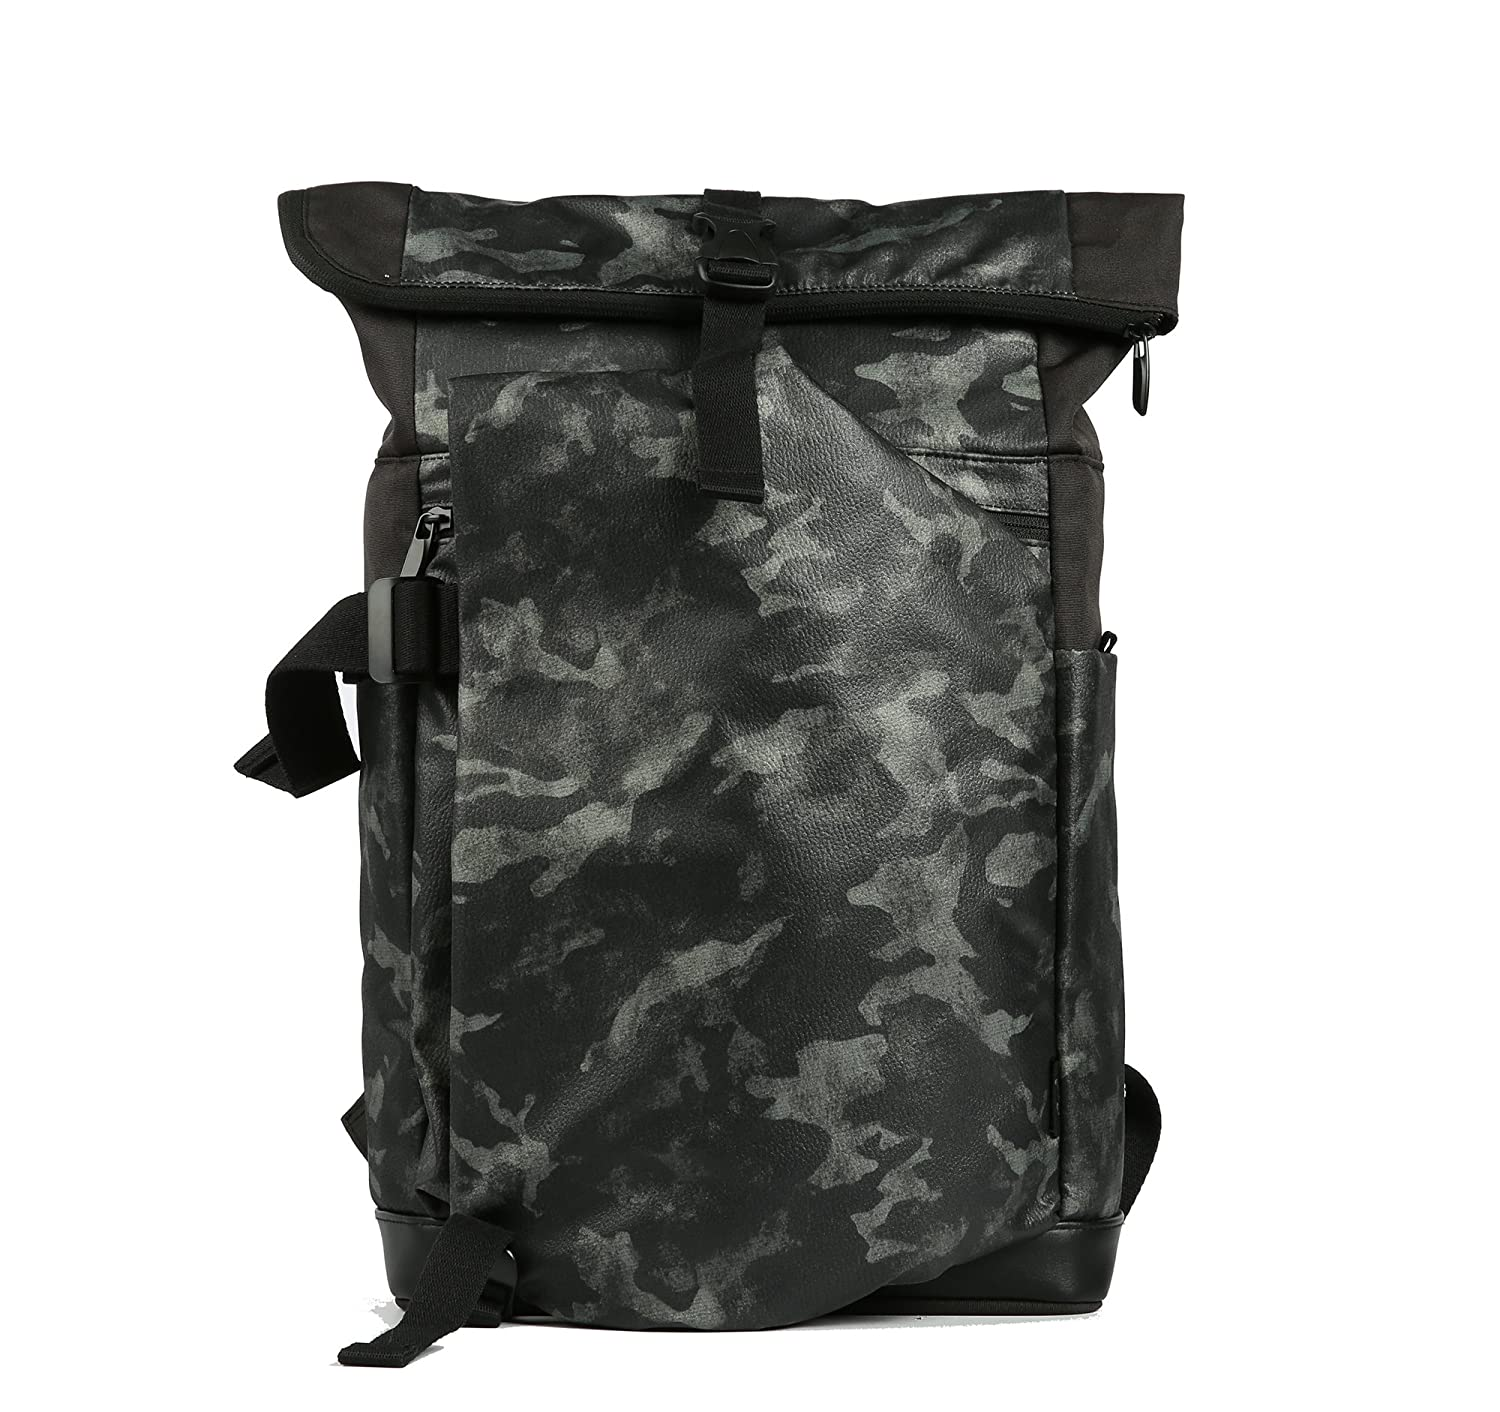 Cai 15.4   Business Laptop-rucksack Anti-theft Backpack Rolltop Rucksack  Multifunctional Water 6ca5dbd3761ea